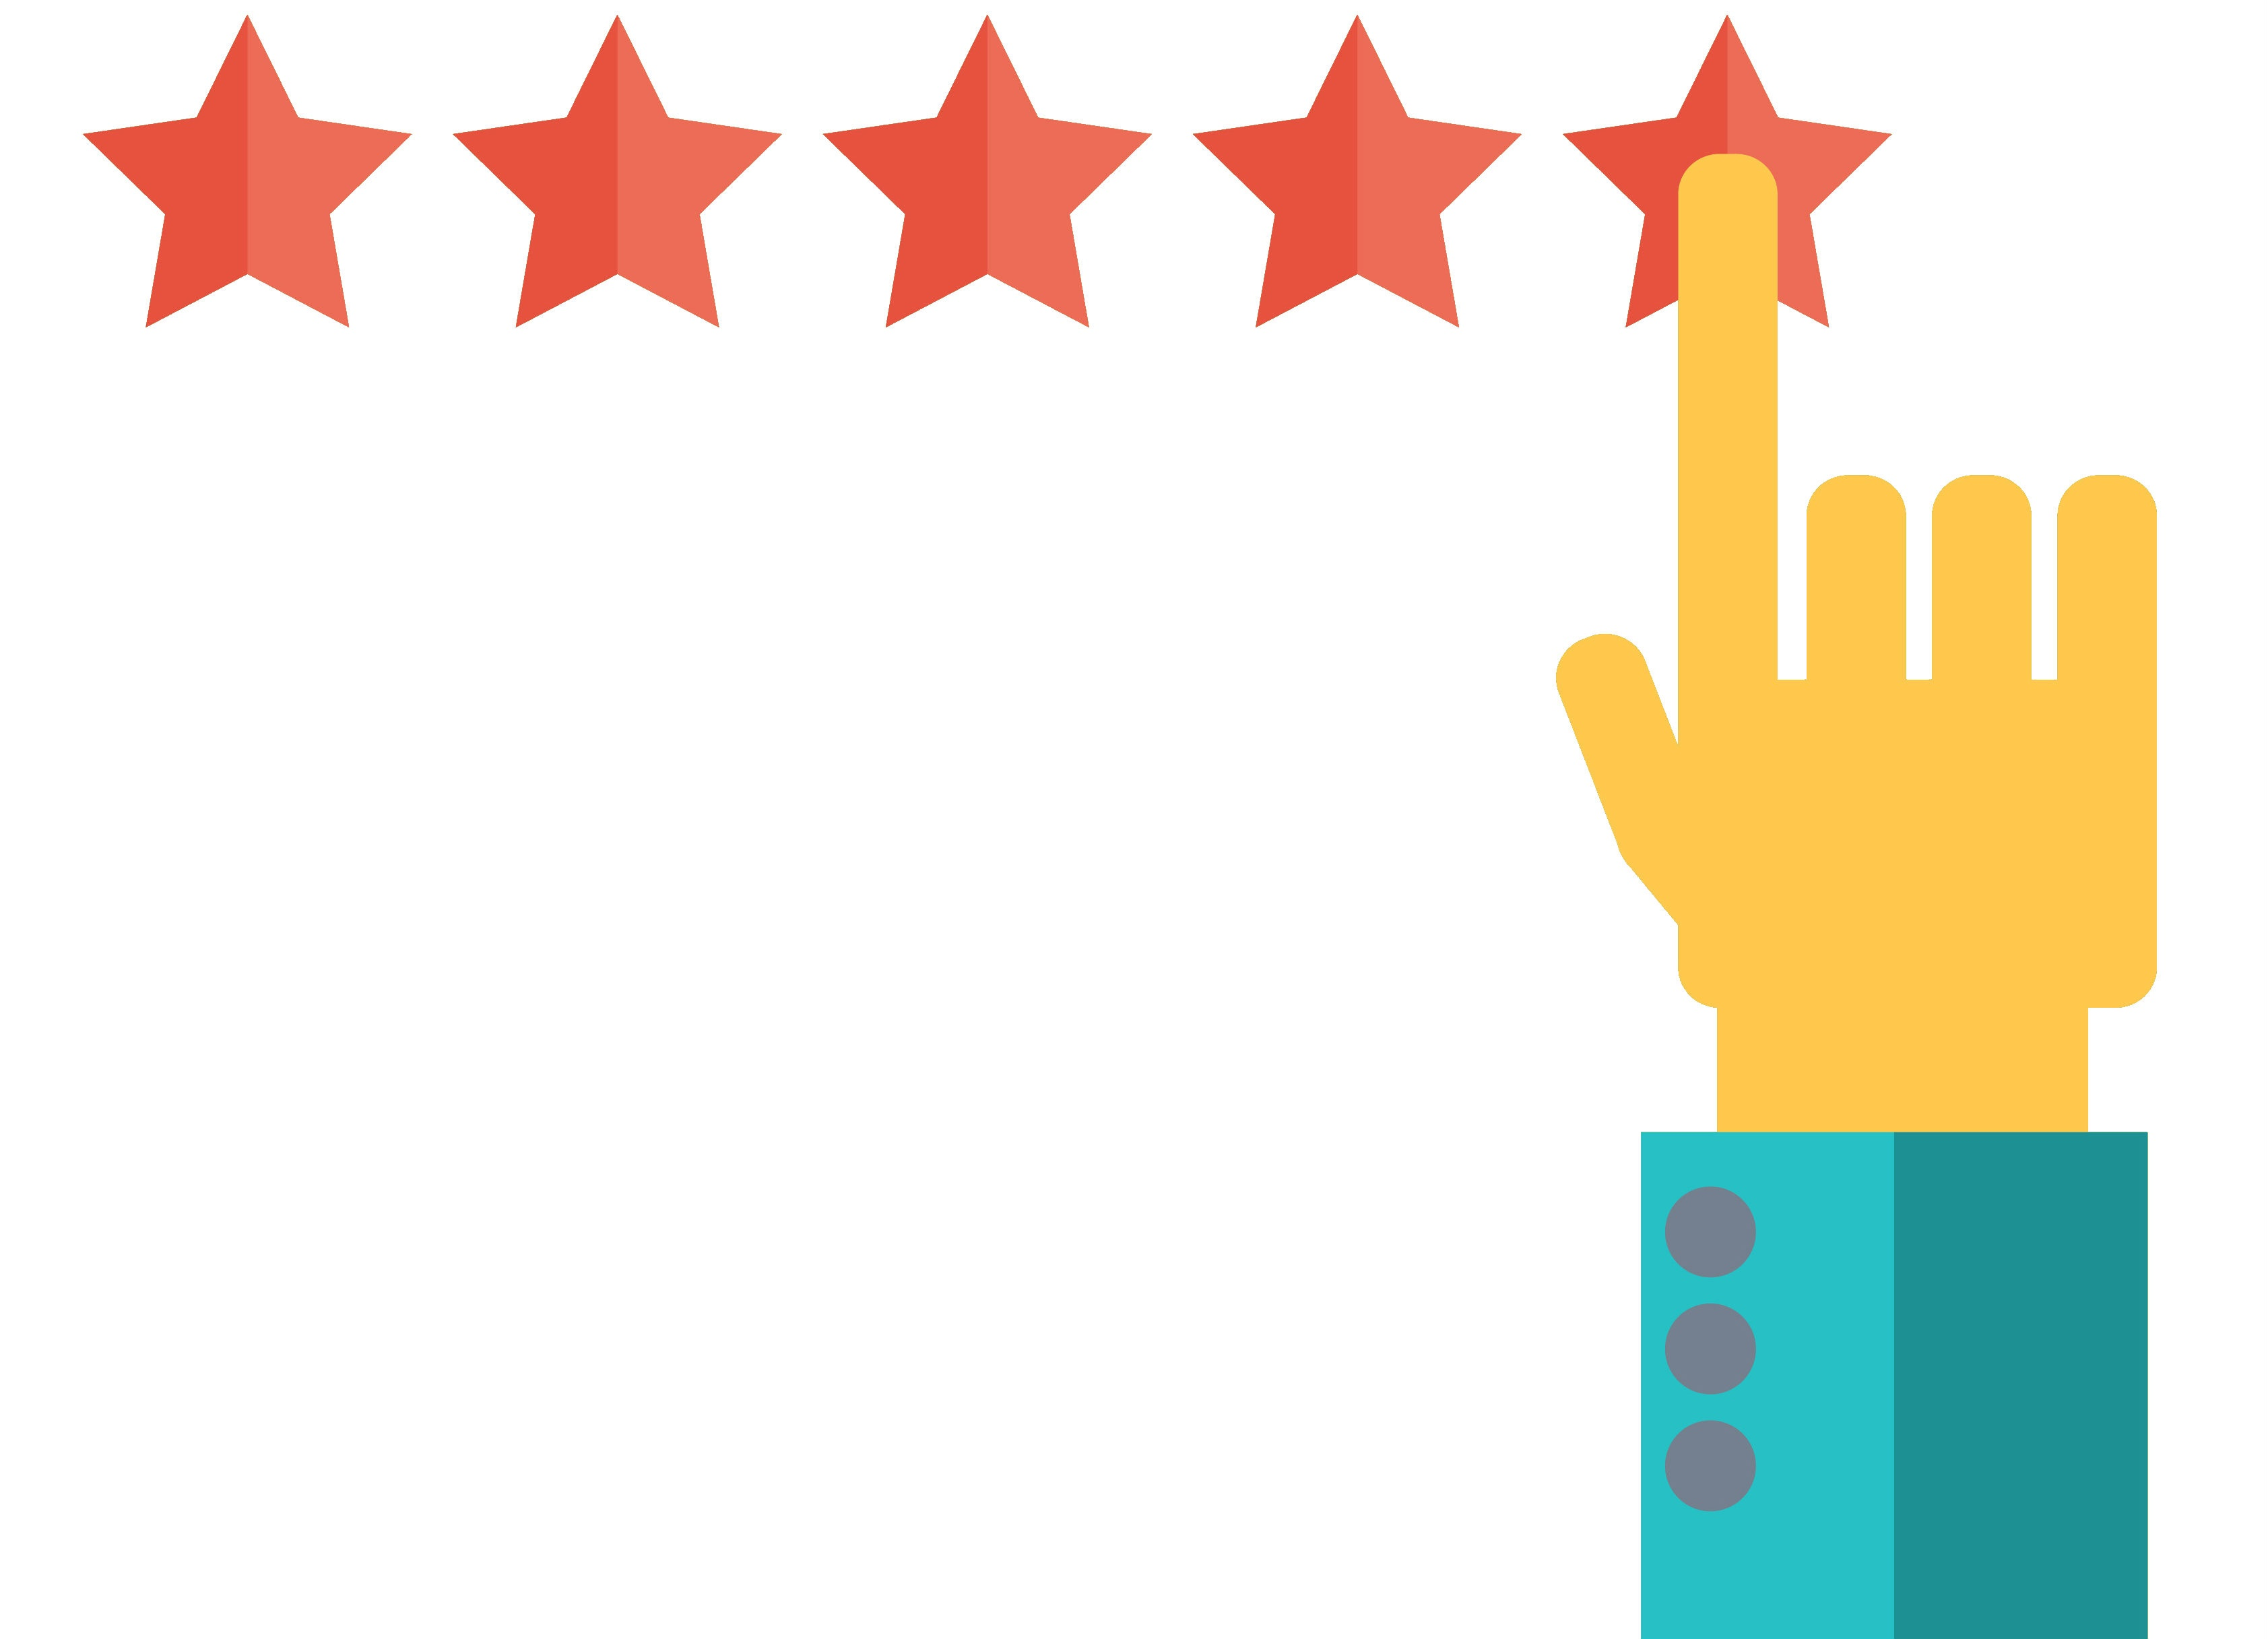 How can your business get star ratings in organic search results?